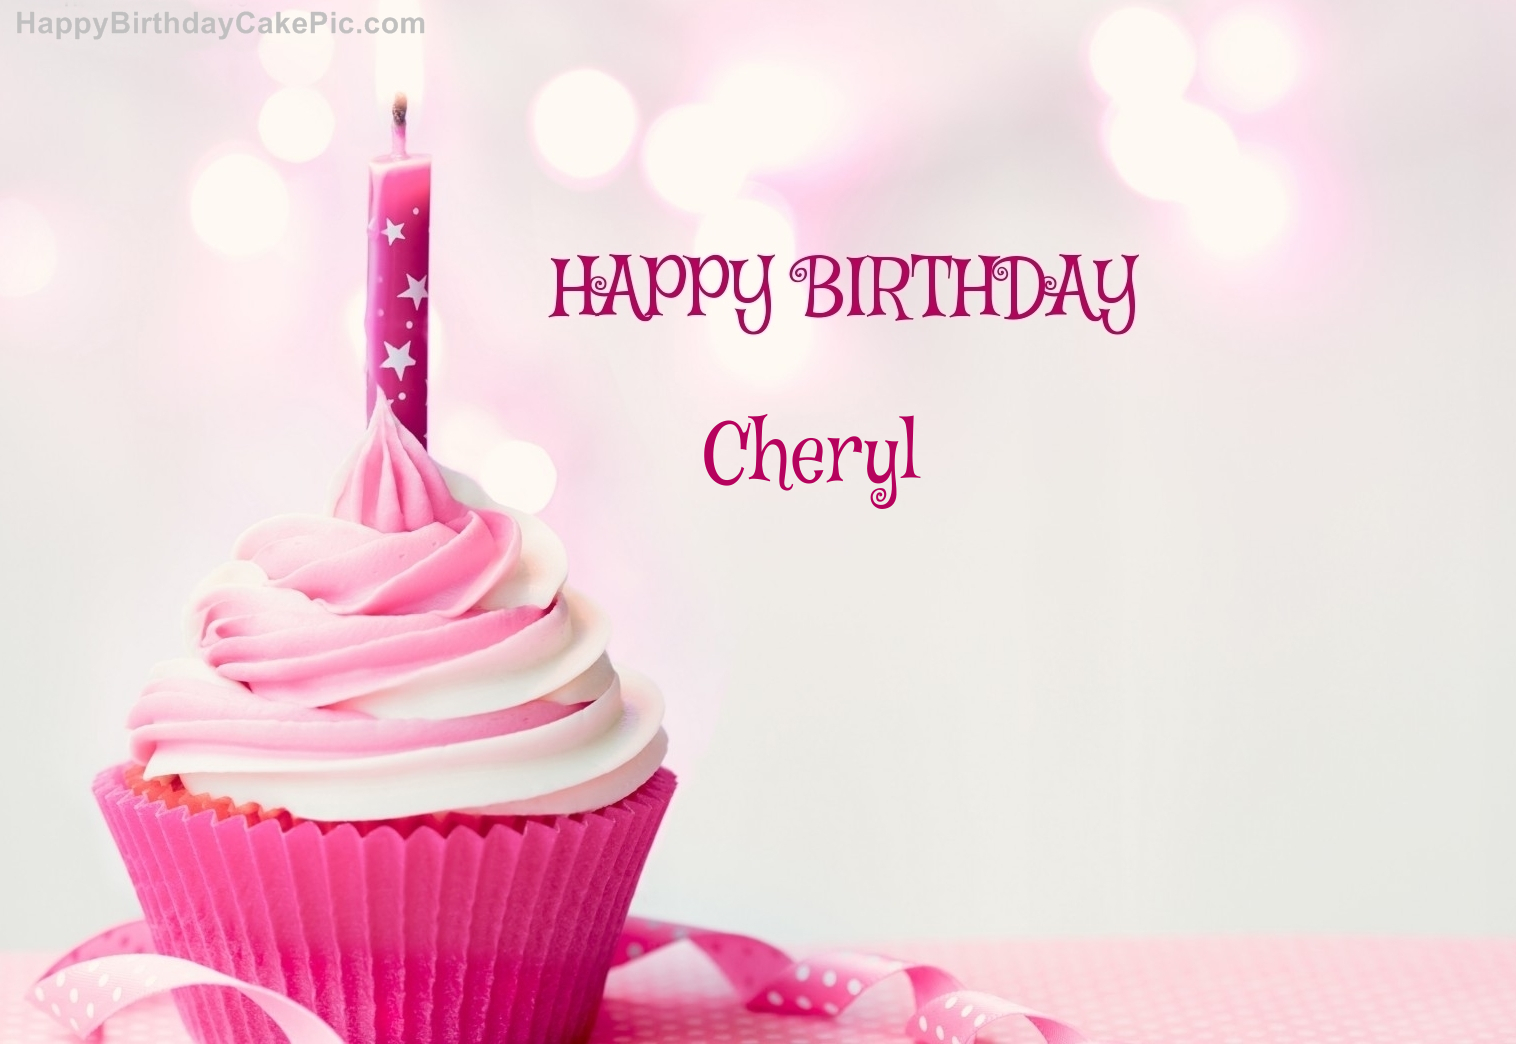 Happy Birthday Cupcake Candle Pink Cake For Cheryl